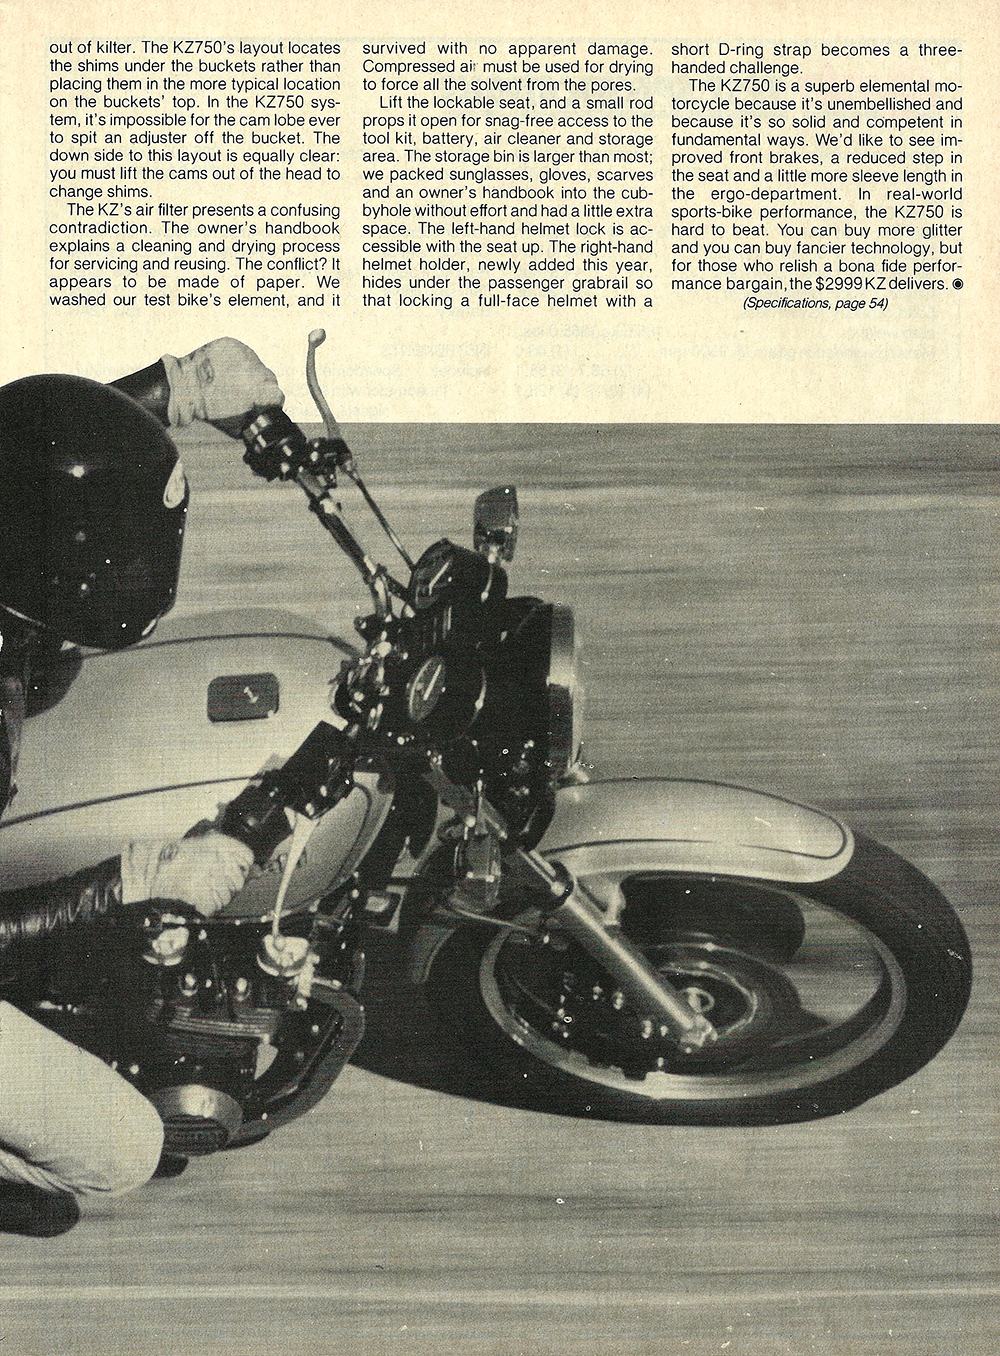 1982 Kawasaki kz750 road test 06.JPG